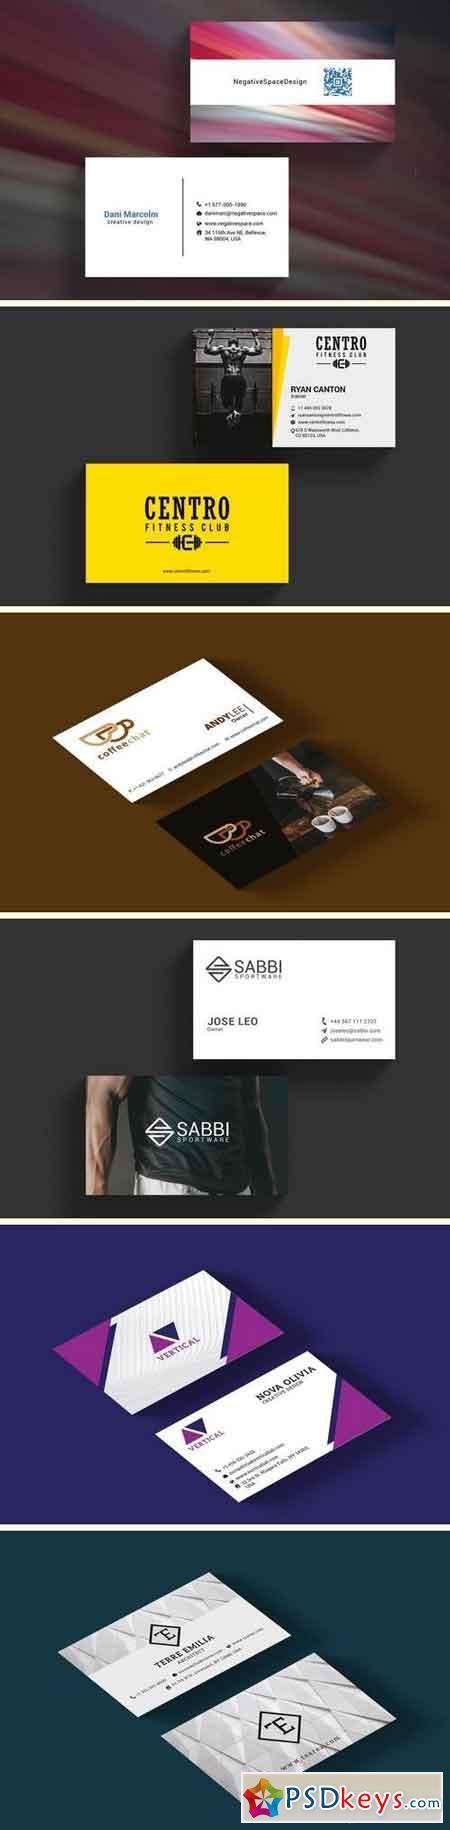 Premium Business Card Bundle